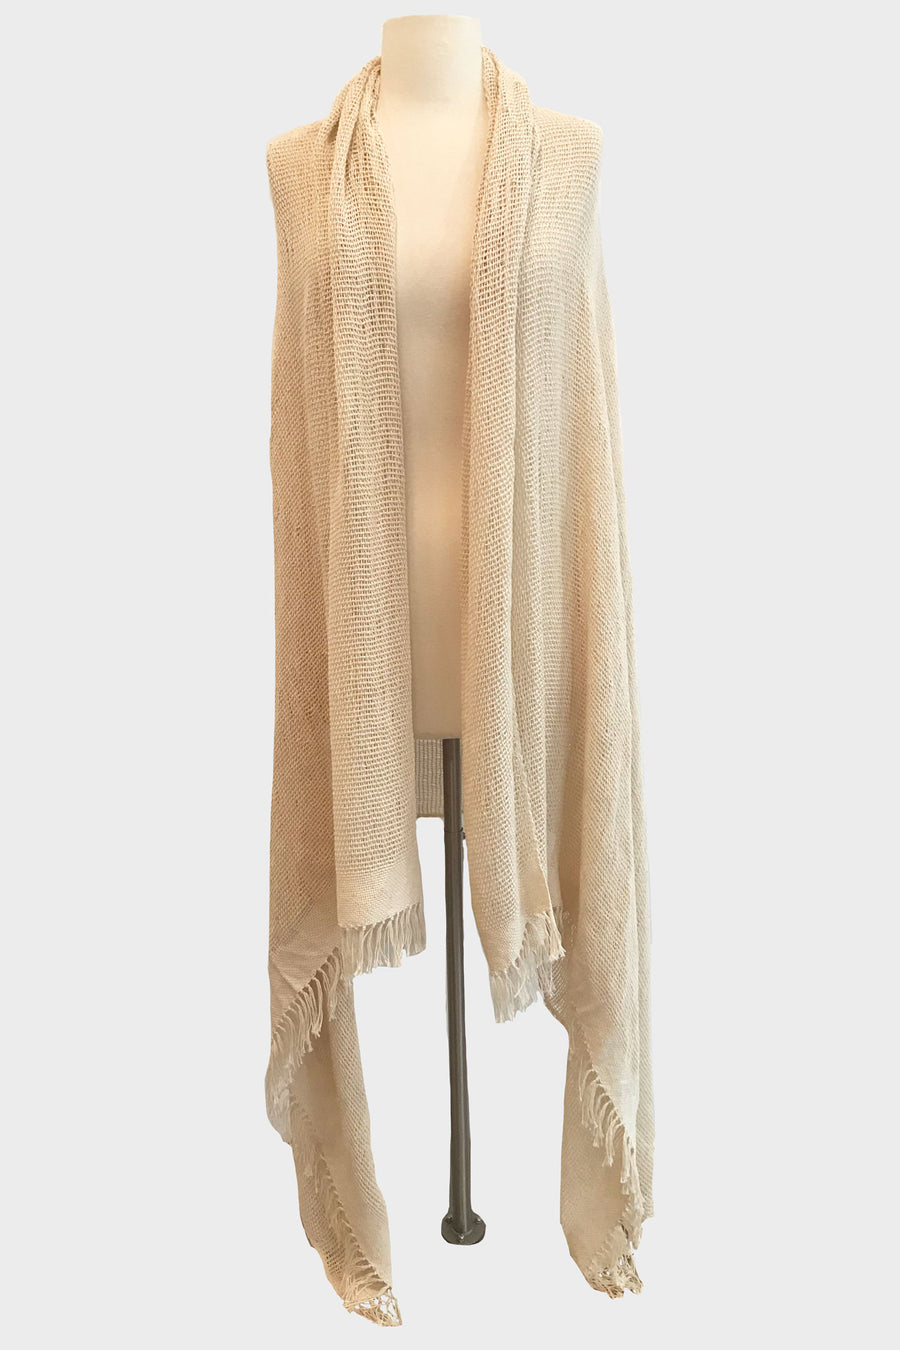 This is a photo of a natural-colored shawl on a mannequin. The shawl is open in the front and falls to the floor at the longest point.